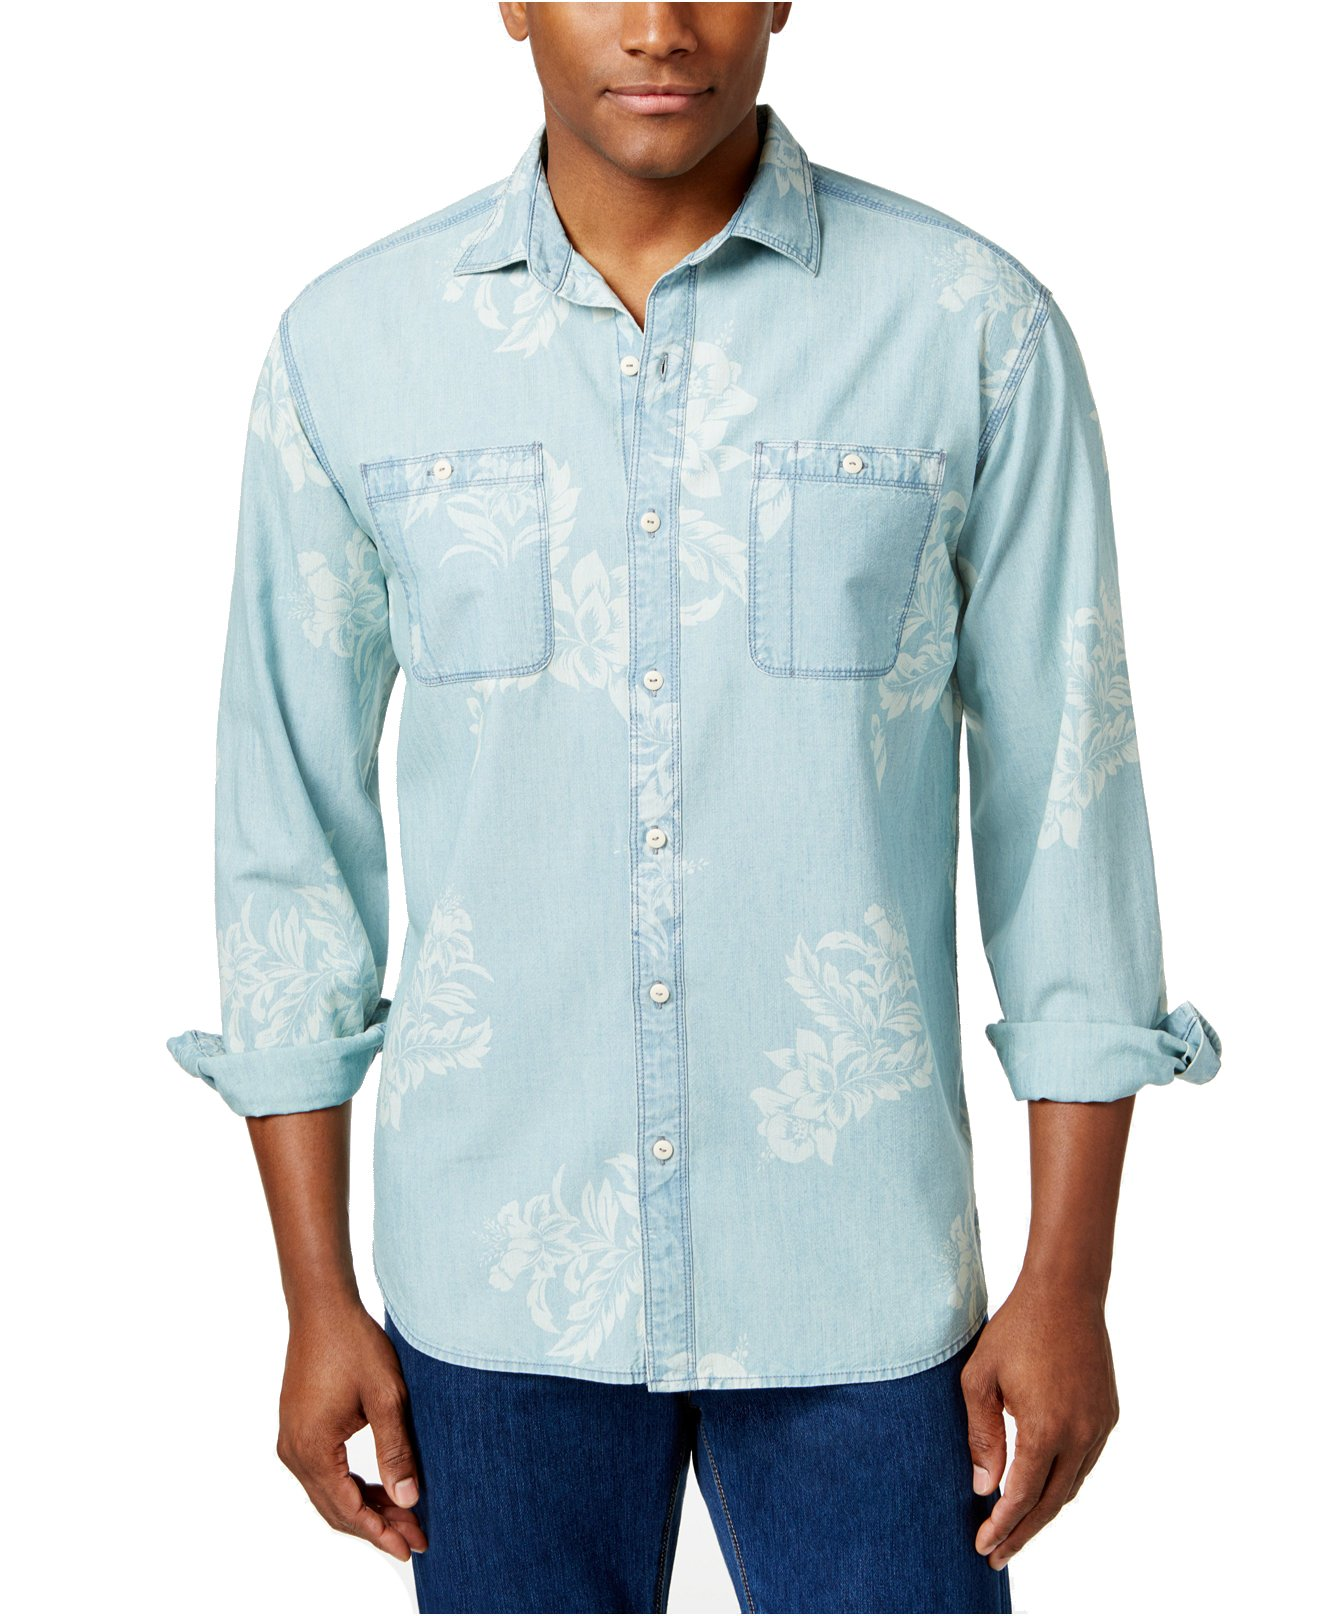 Tommy Bahama Men's Selaron Chambray Long-Sleeve Button-Up Shirt (Chambray Blue, X-Large) by Tommy Bahama